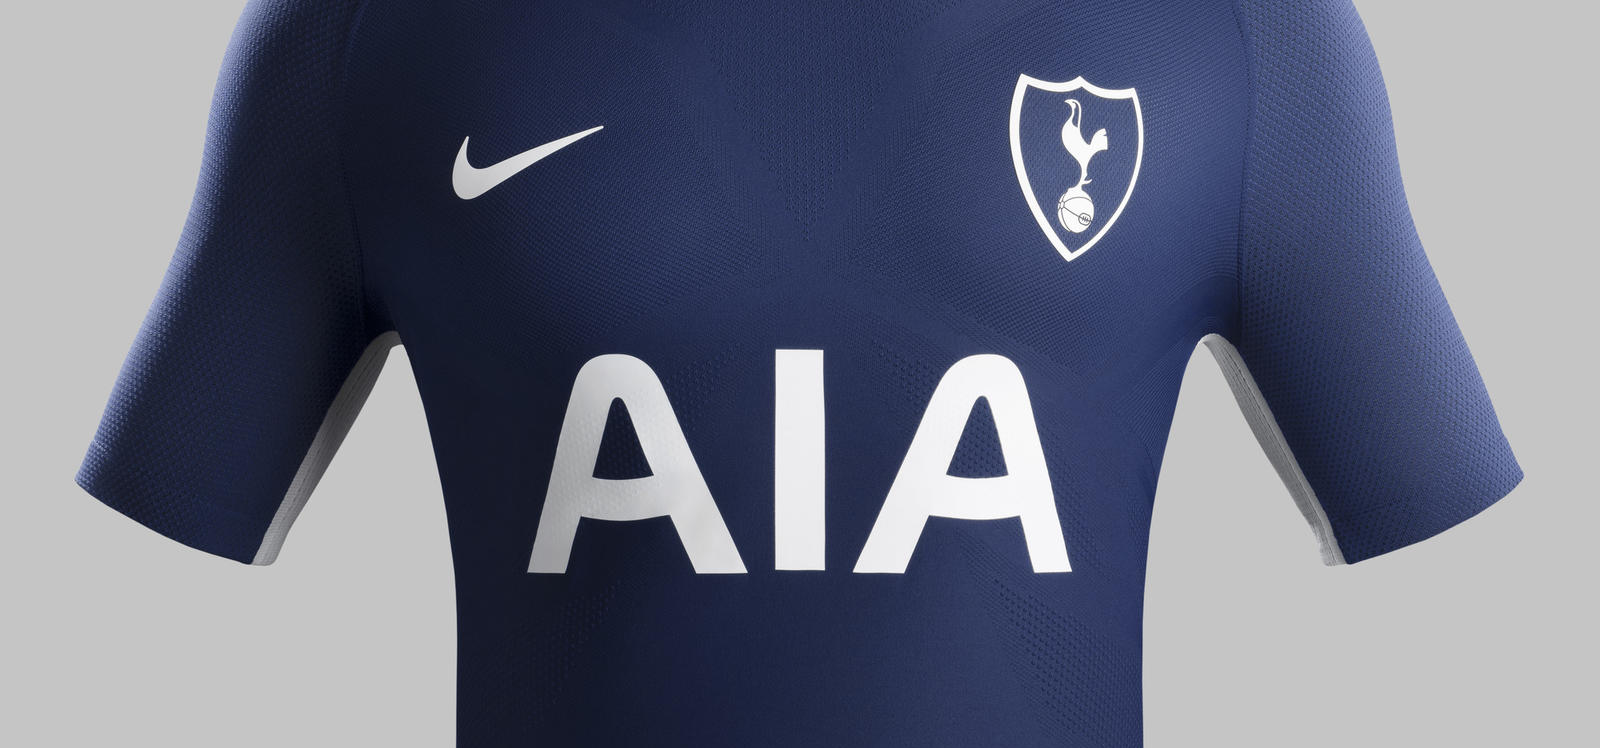 tottenham-hotspur-voetbalshirts-2017-2018.png